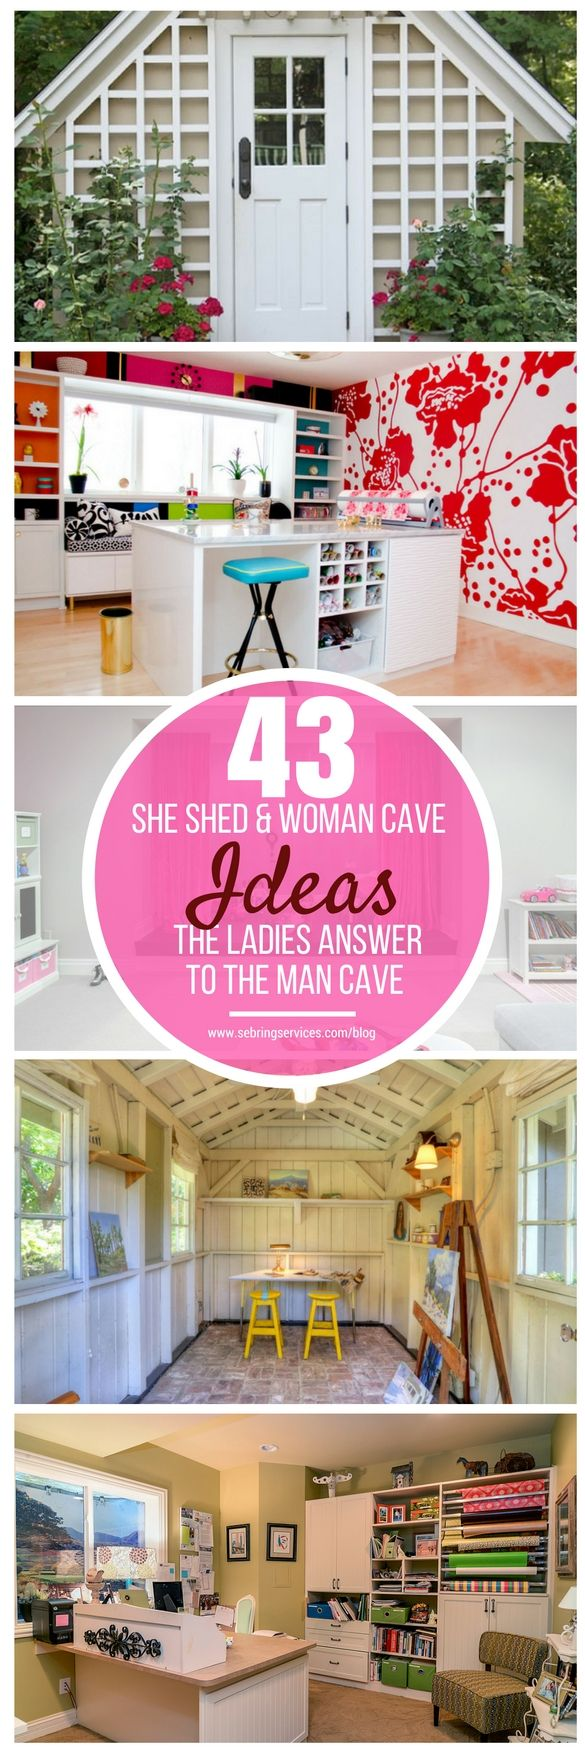 Like a man cave, a woman cave can be located in various areas of the house, especially off-traffic spaces. A basement remodel is usually a time to add a spot for a woman cave, though it can also be located in an unused bedroom or any other secluded part of the house. But it is not always the case that women find their sanctuaries inside the house, sometimes it can be located outside the house. In such cases, it is more commonly referred to as a she-shed.